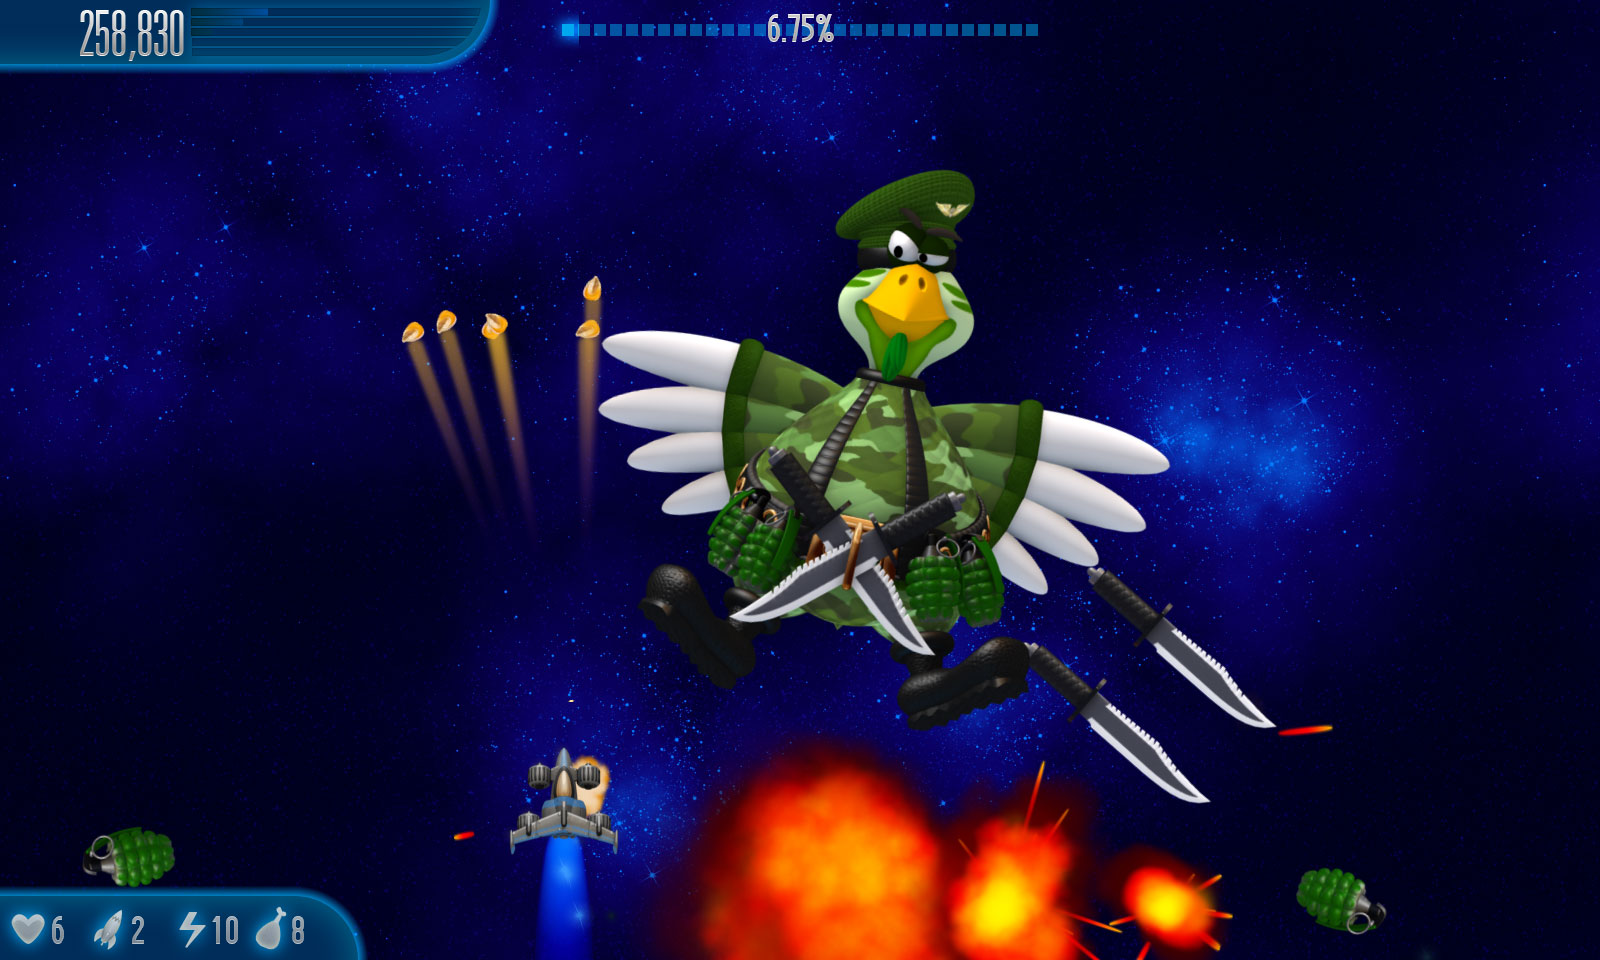 Tải game bắn gà Chicken Invaders 5 - full crack